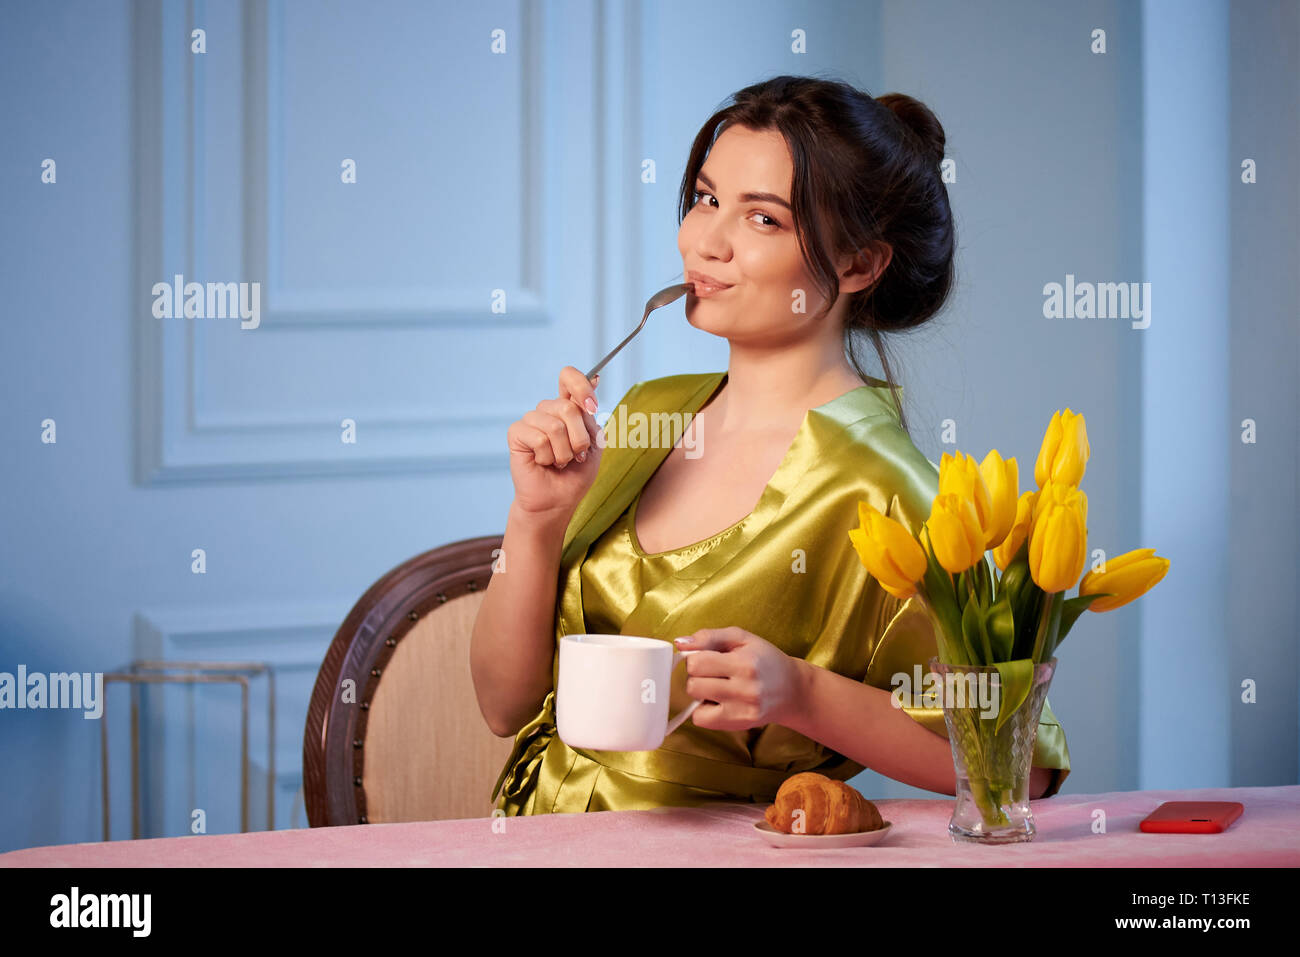 Beautiful young woman in sleepwear drinking morning coffee with croissants. - Stock Image